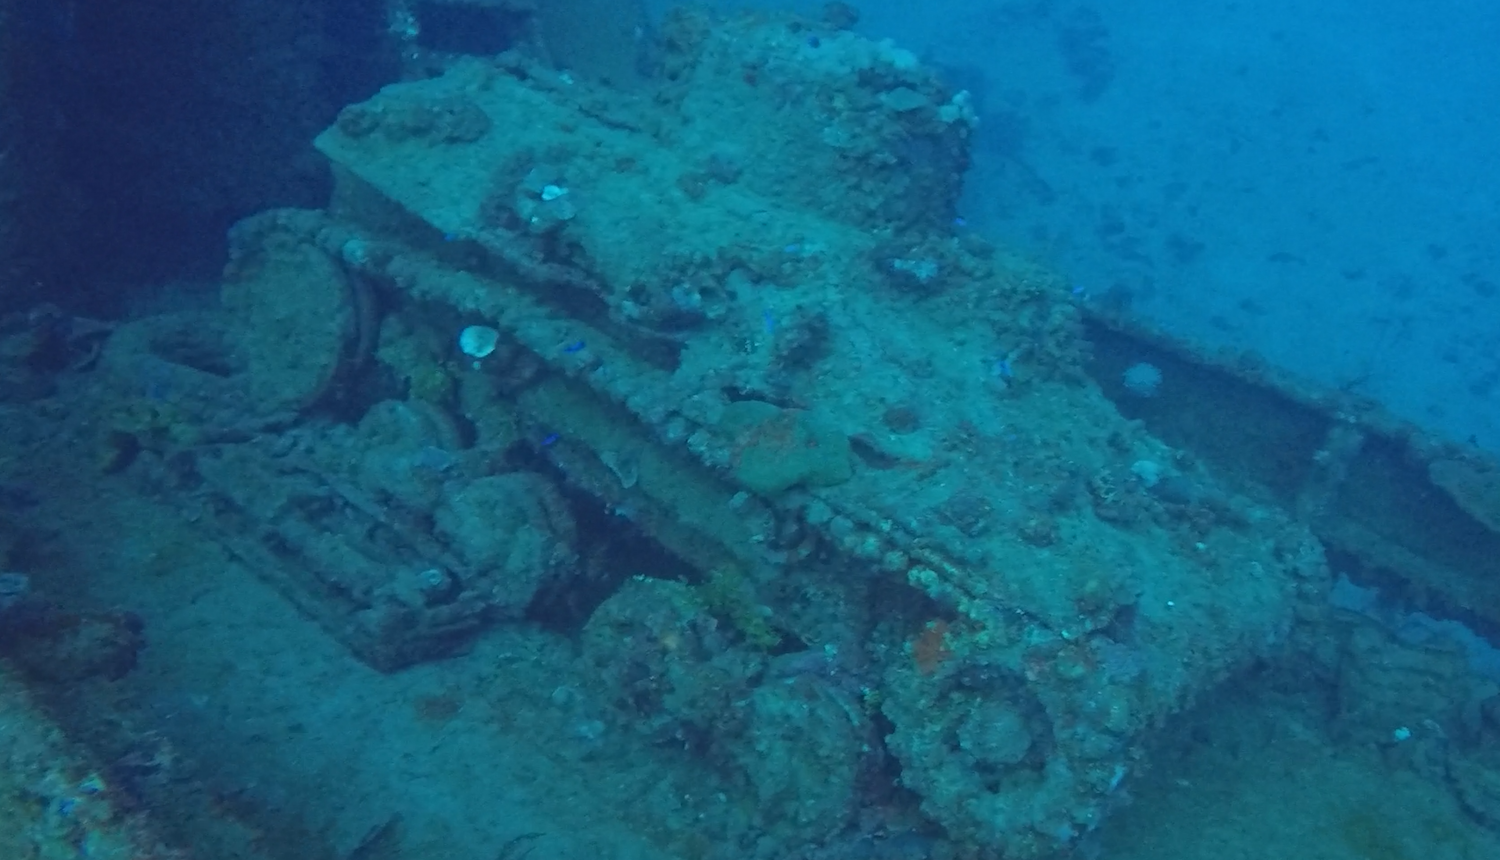 A battle tank inside a ship wreck at Truk Lagoon